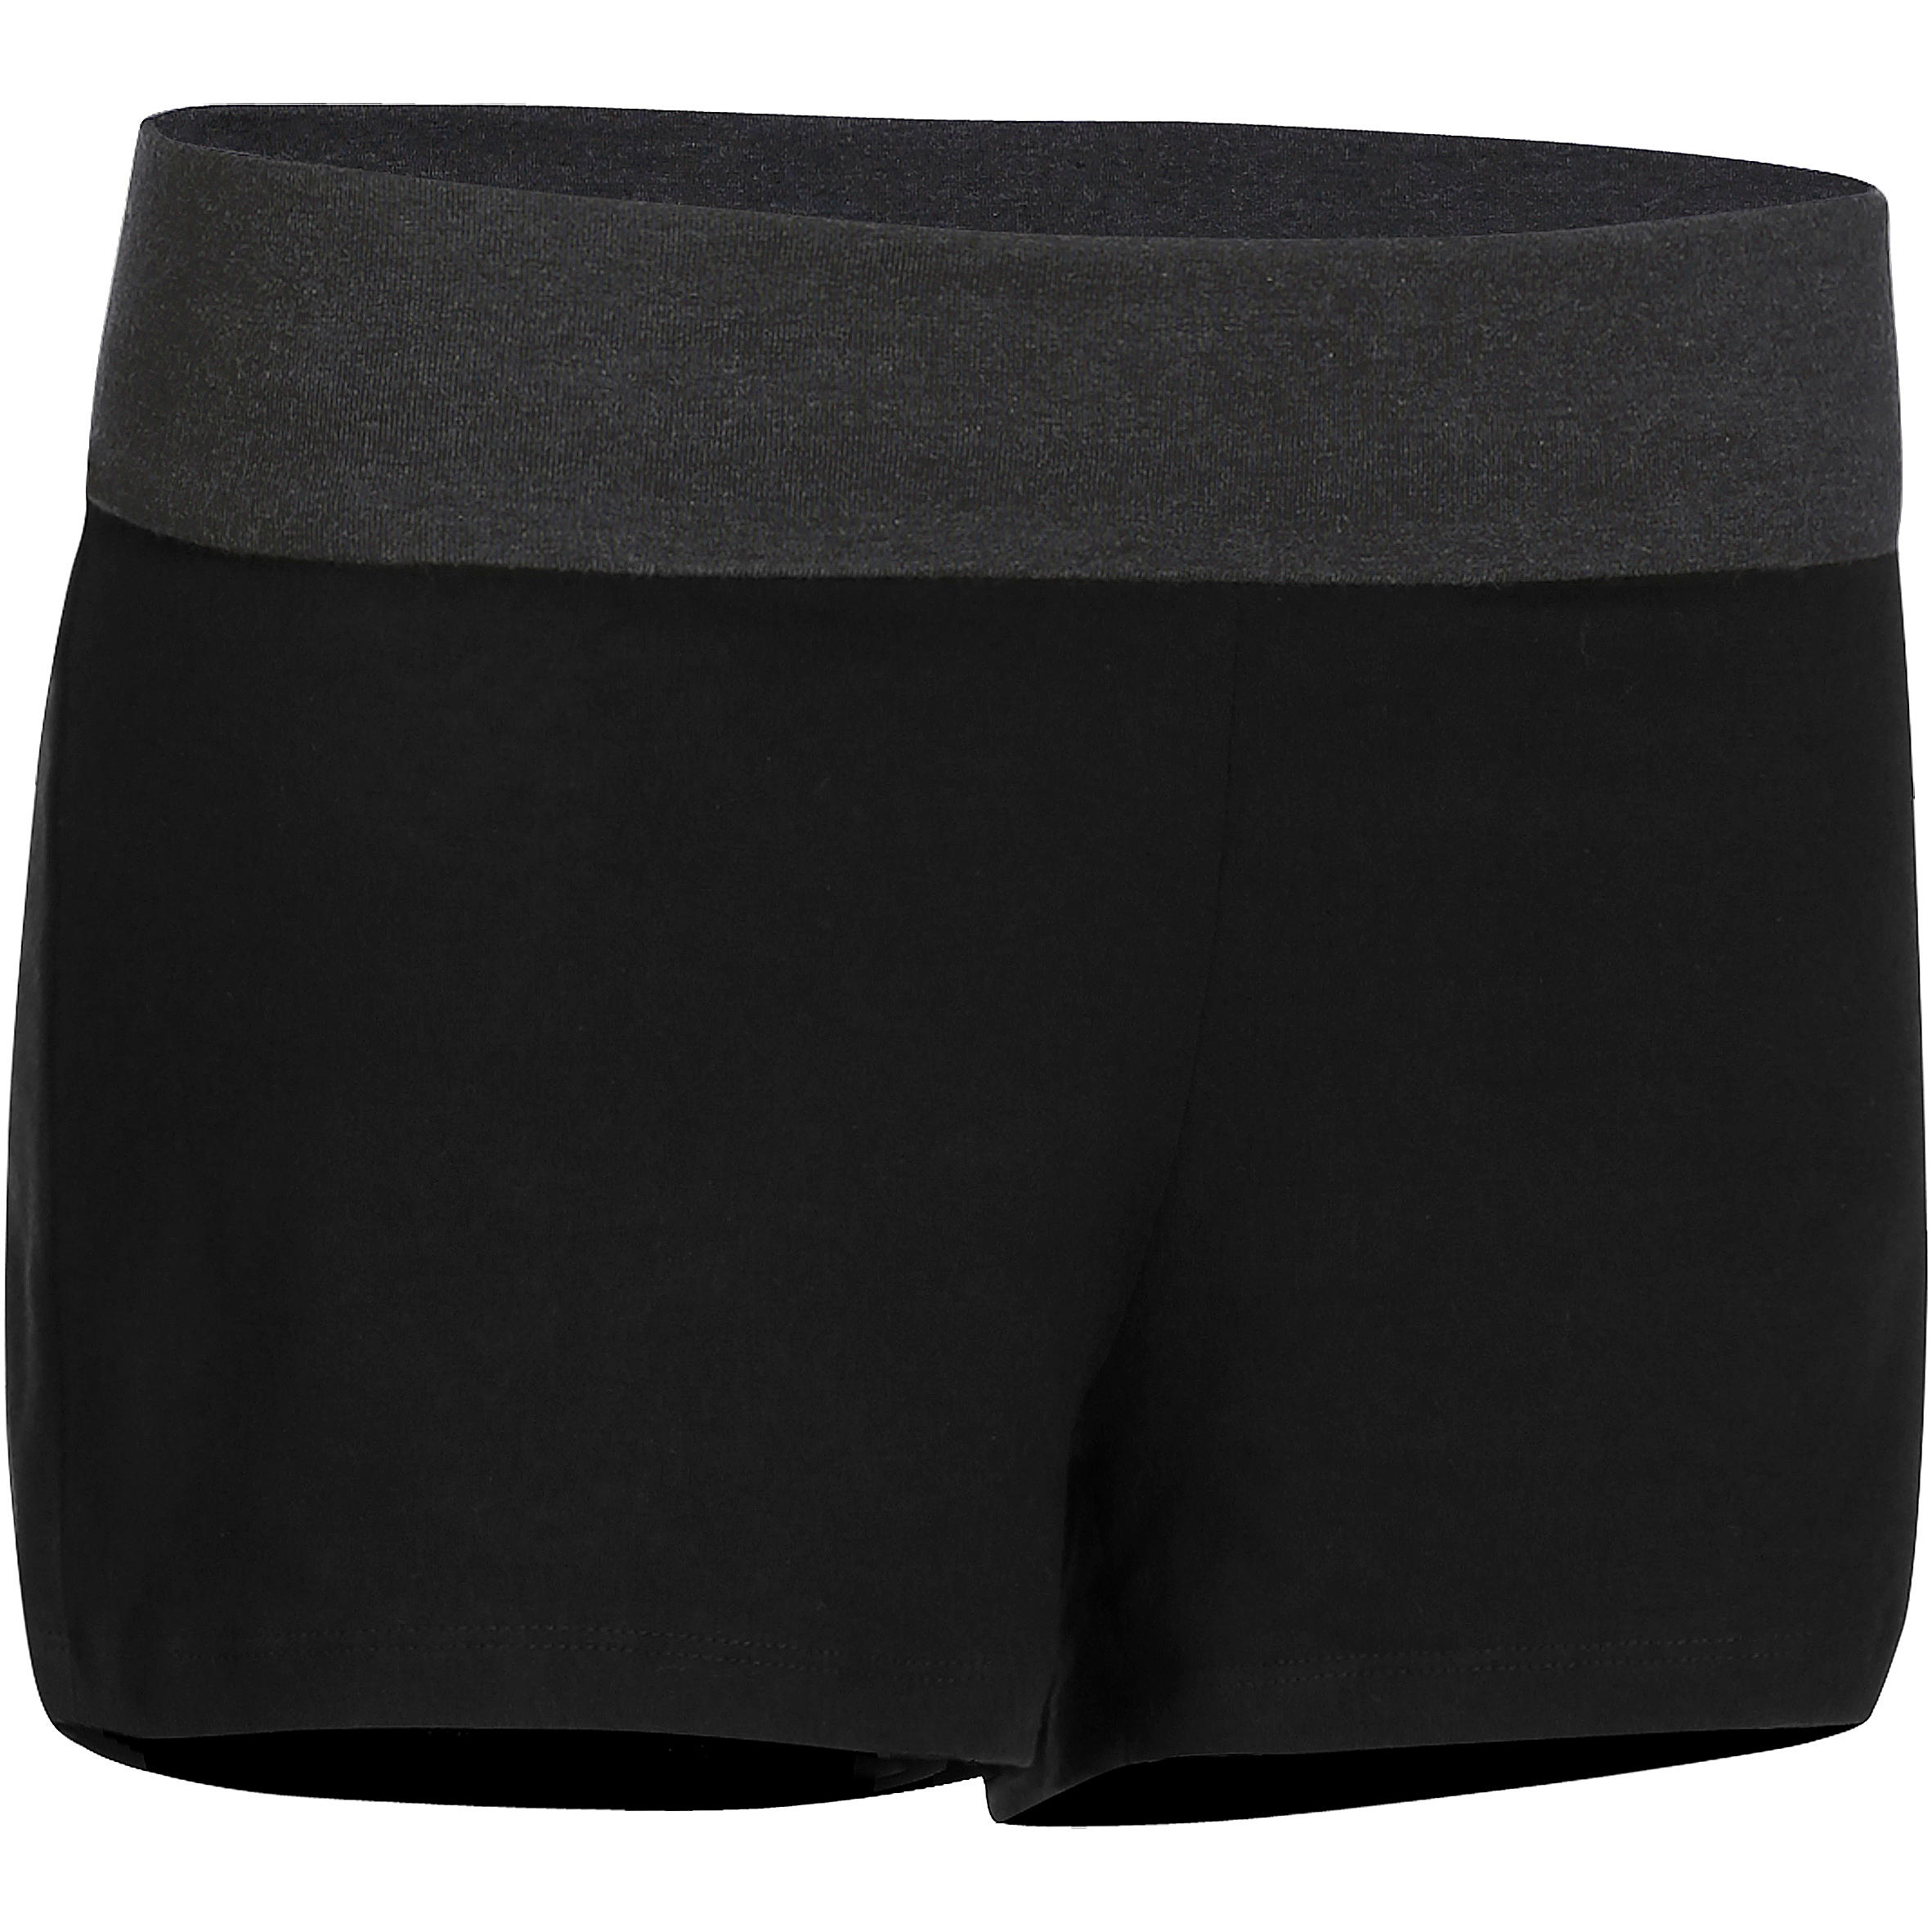 Women's Organic Cotton Gentle Yoga Shorts